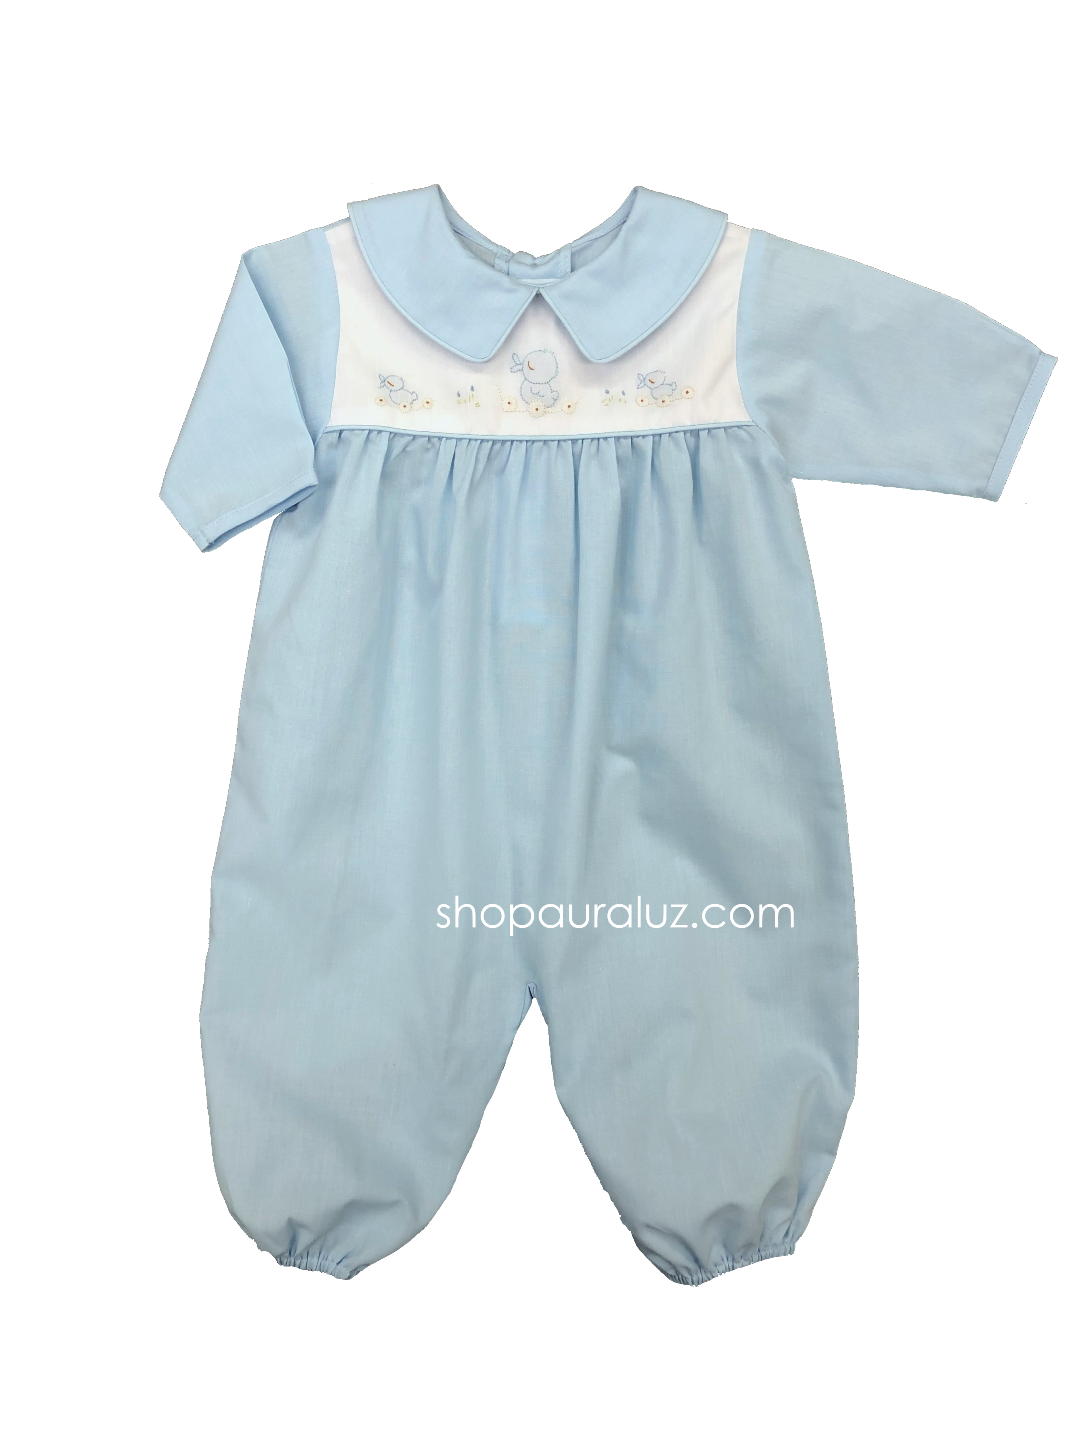 Auraluz Boy l/s Convertibag...Blue with binding trim and embroidered ducks